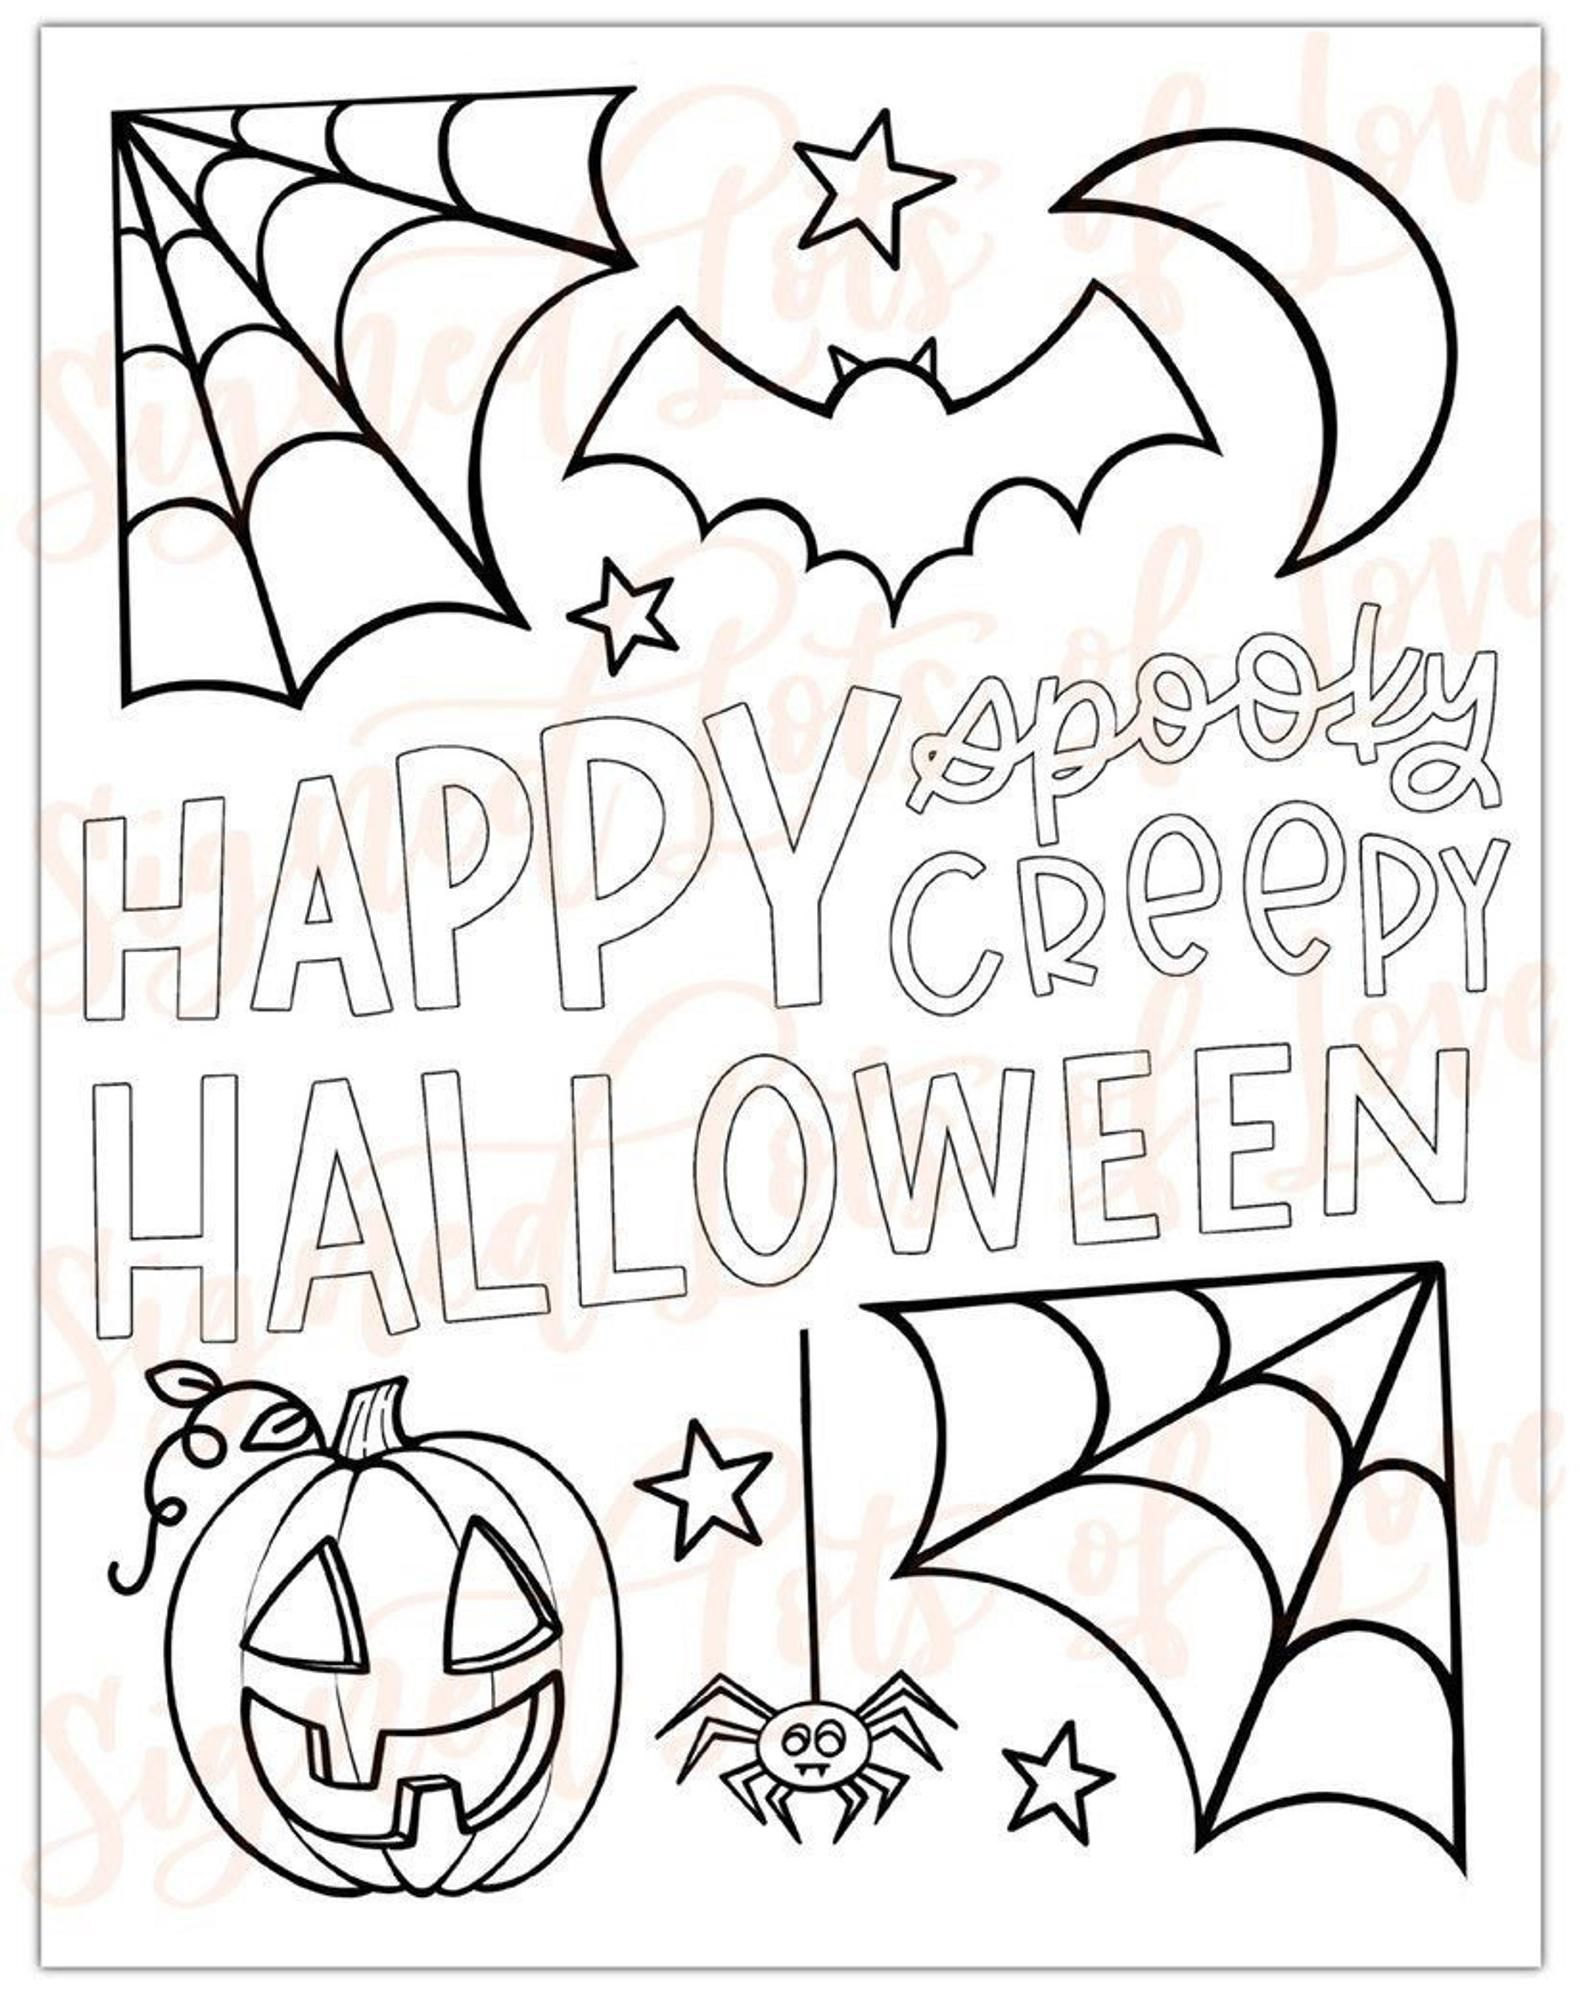 Pin On Halloween Coloring In 2021 Halloween Coloring Pages Printable Free Halloween Coloring Pages Halloween Coloring Book